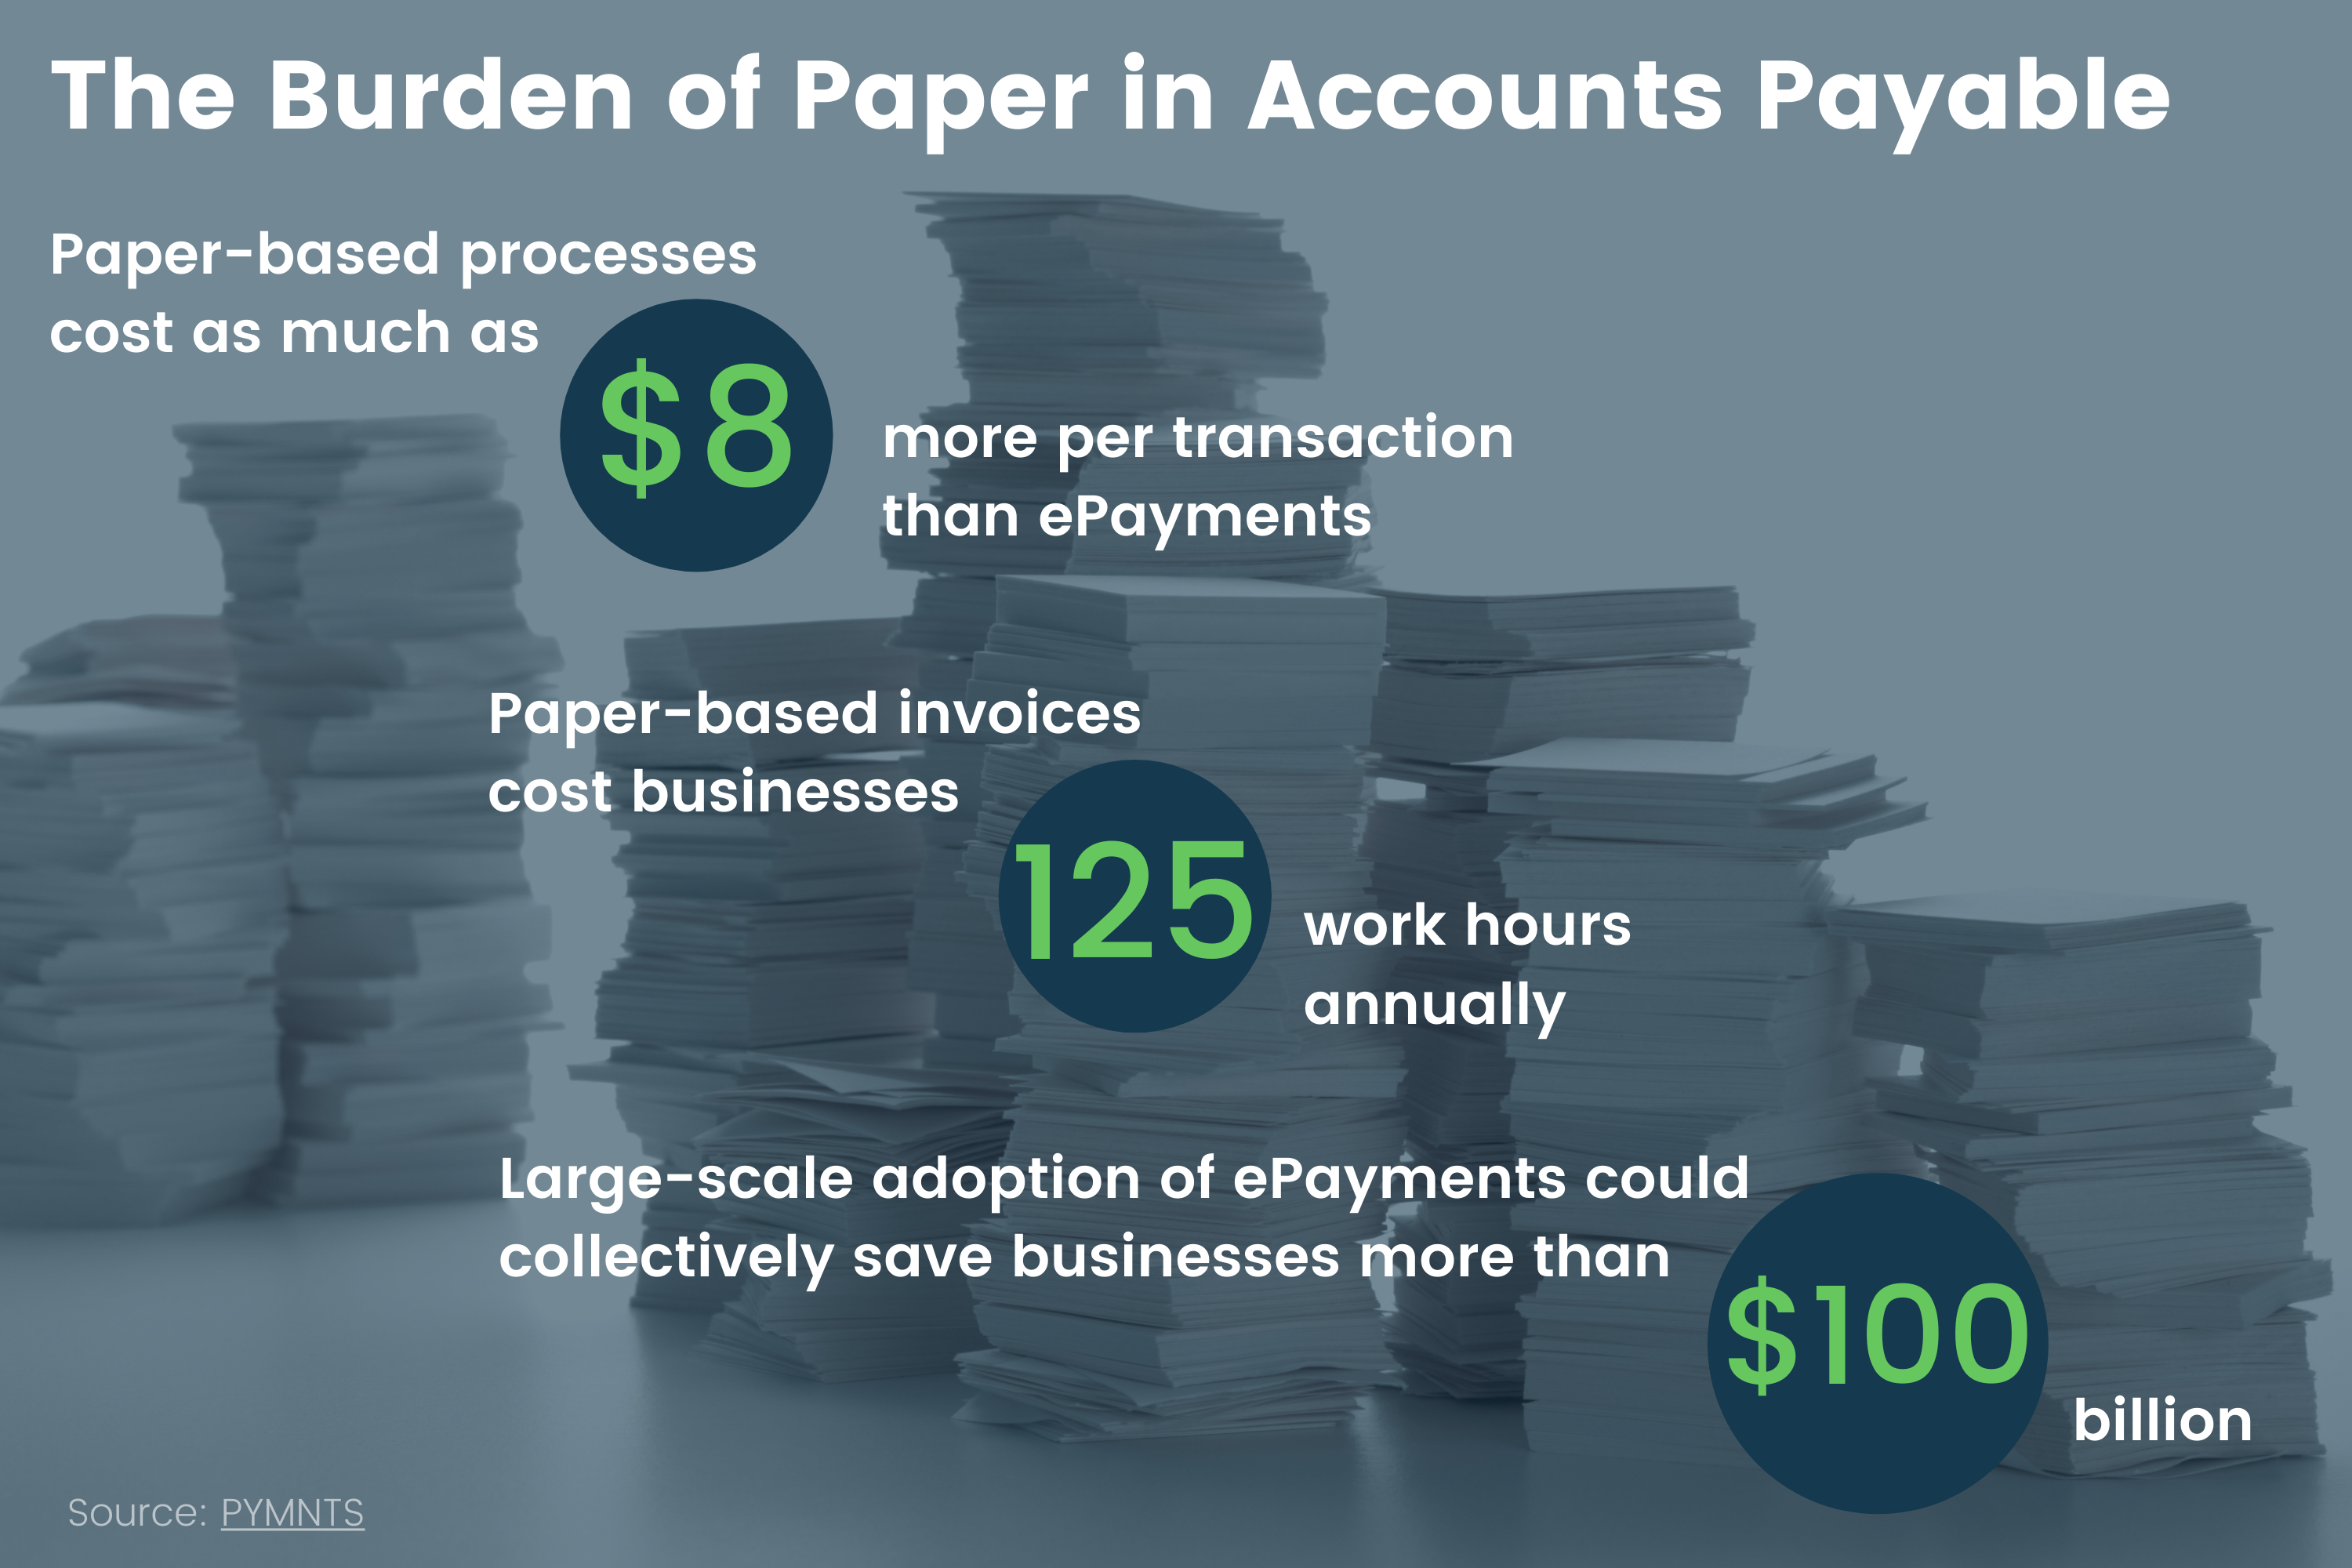 the_burden_of_paper_in_accounts_payable_inforgraphic_with_stats_from_pymnts_digitzation_journey